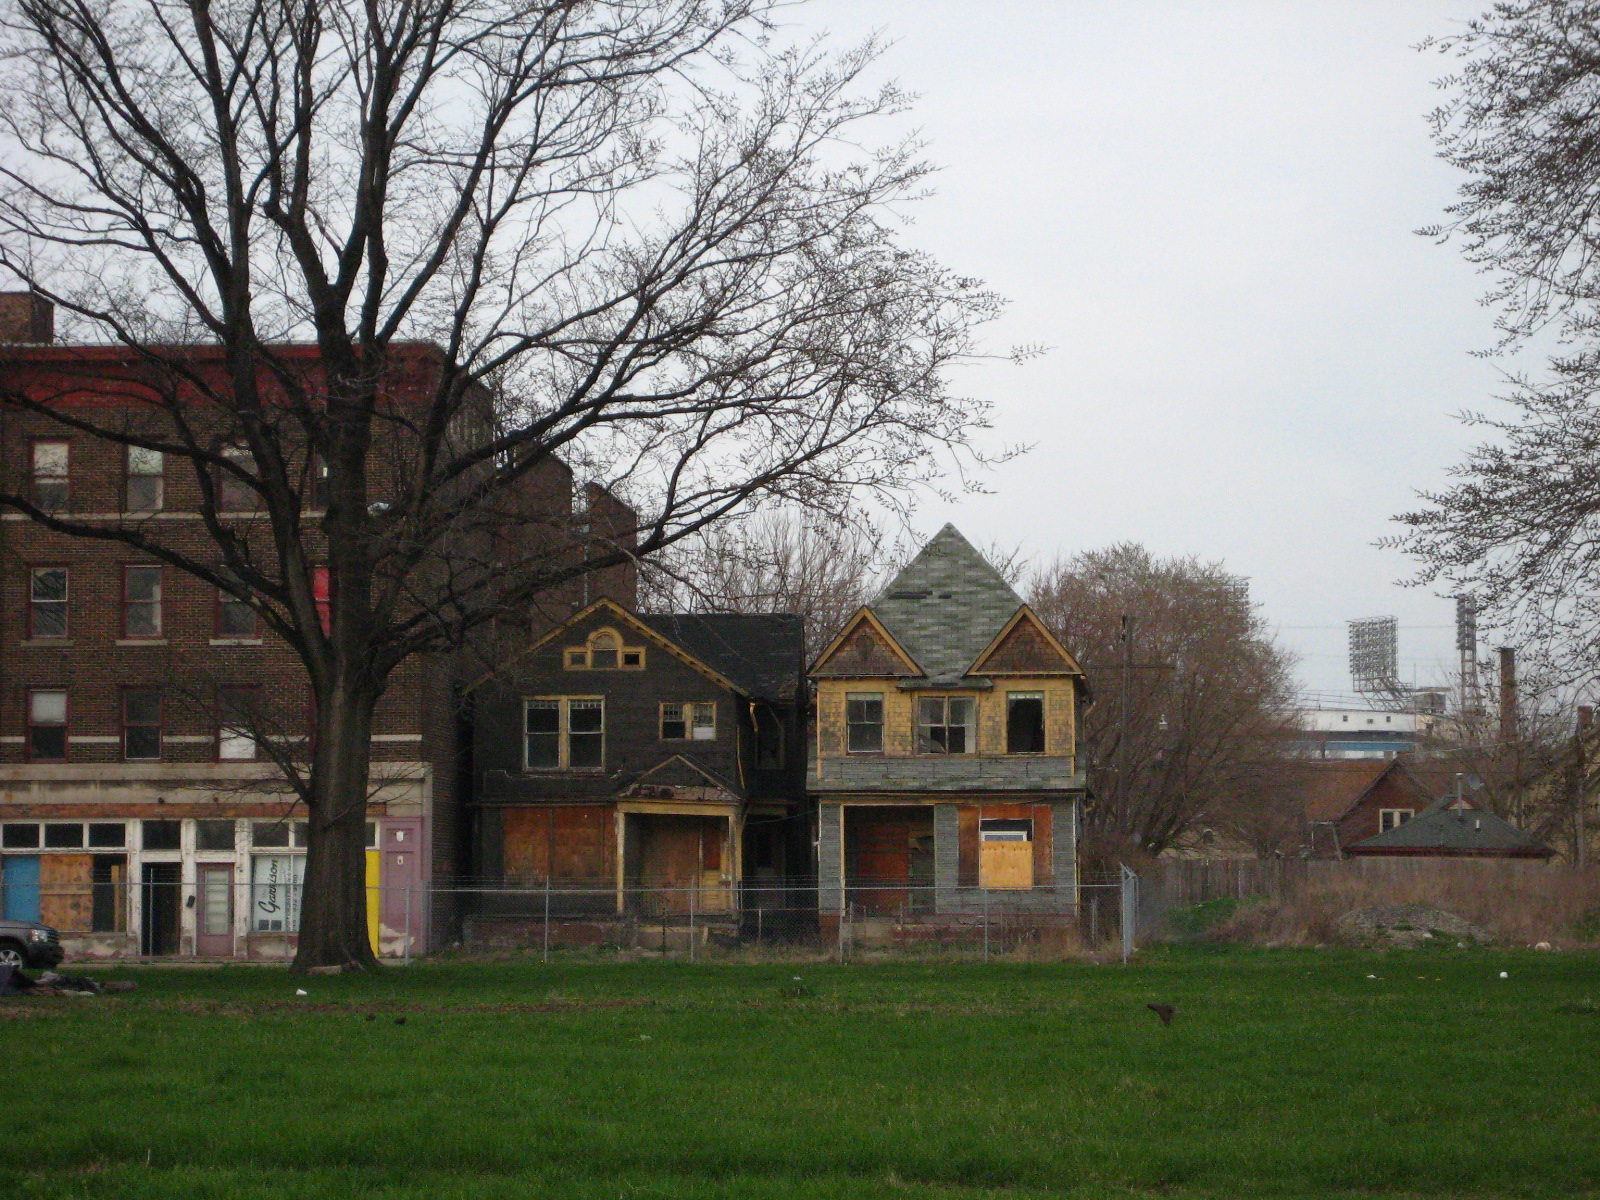 A $500 House in Detroit by Drew Philip; Houses in Detroit, Michigan